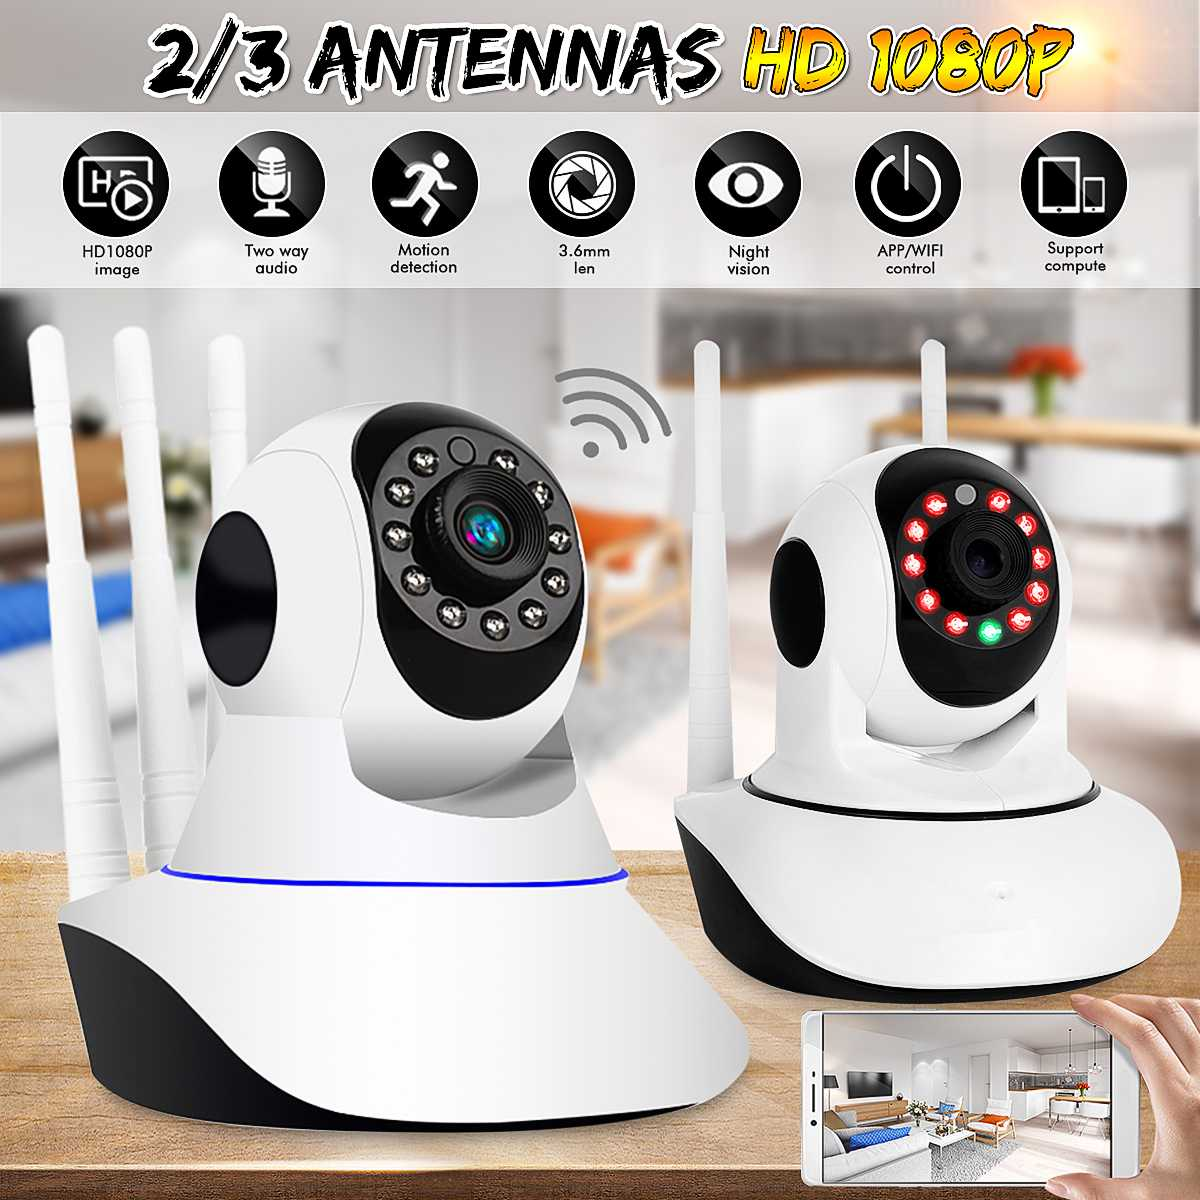 1080P WiFi Wireless IP Camera Security Video Surveillance Camera Baby Monitor Night Vision / PTZ / 3 Antenna / Motion CCTV1080P WiFi Wireless IP Camera Security Video Surveillance Camera Baby Monitor Night Vision / PTZ / 3 Antenna / Motion CCTV